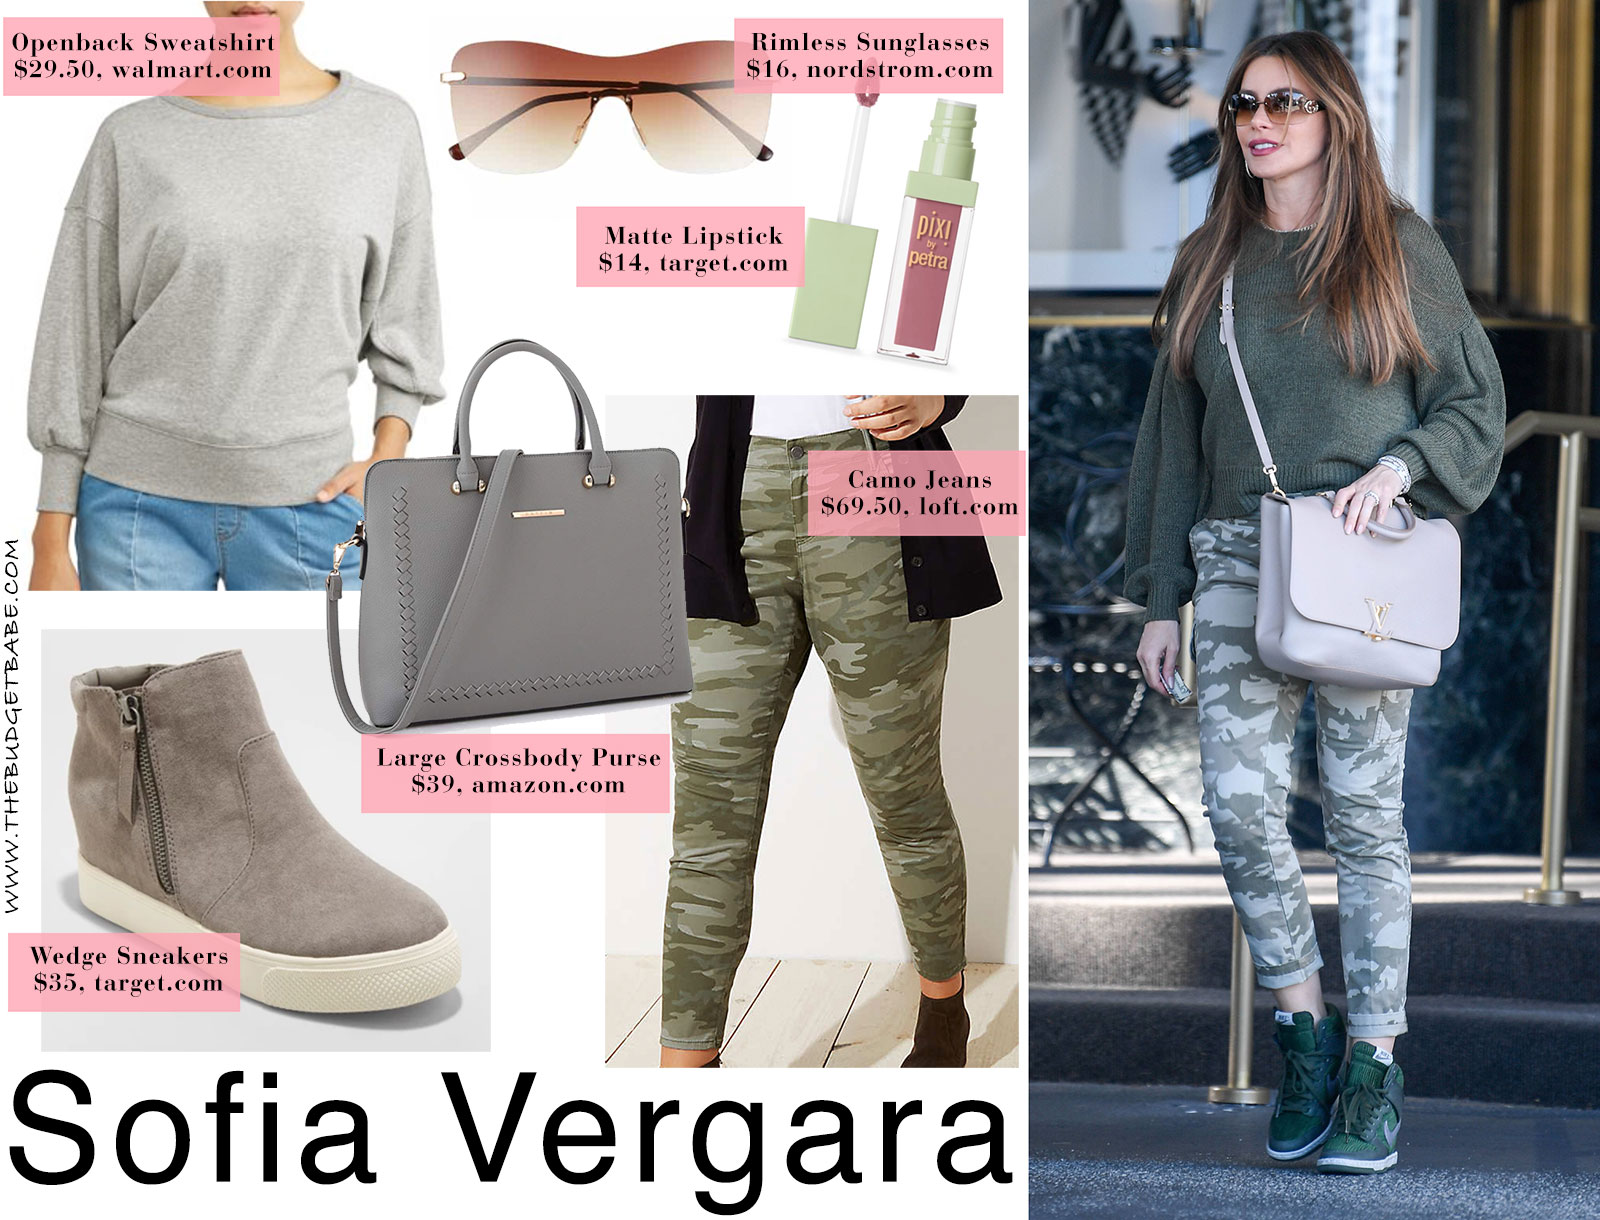 5ca70469f745 Sofia Vergara's dolman sleeve sweater, camo jeans and wedge sneakers look  for less